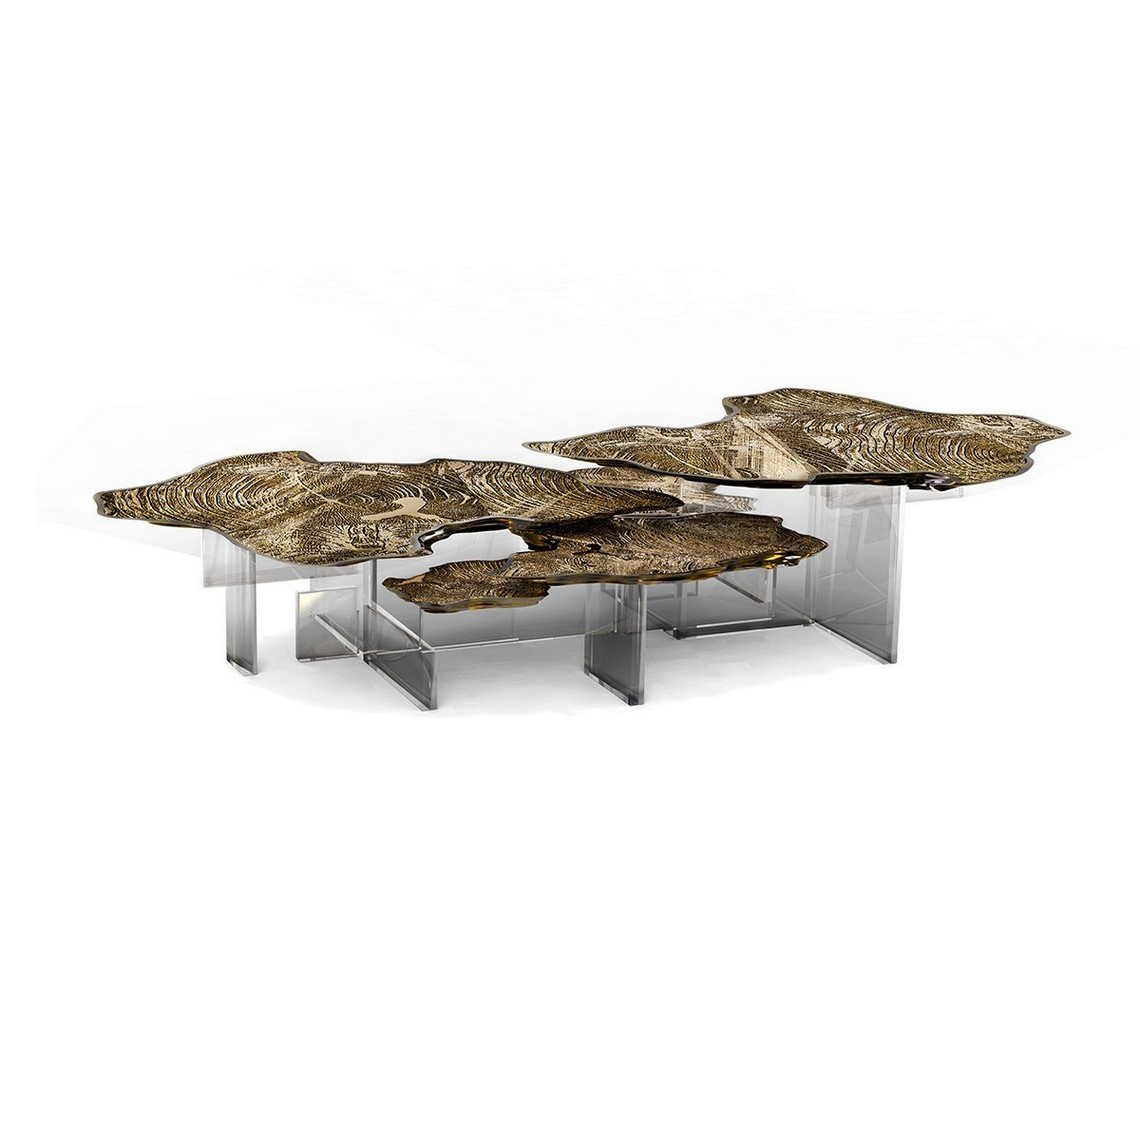 Artistic Center Tables That Will Inspire You Forever artistic center tables Artistic Center Tables That Will Inspire You Forever monet2